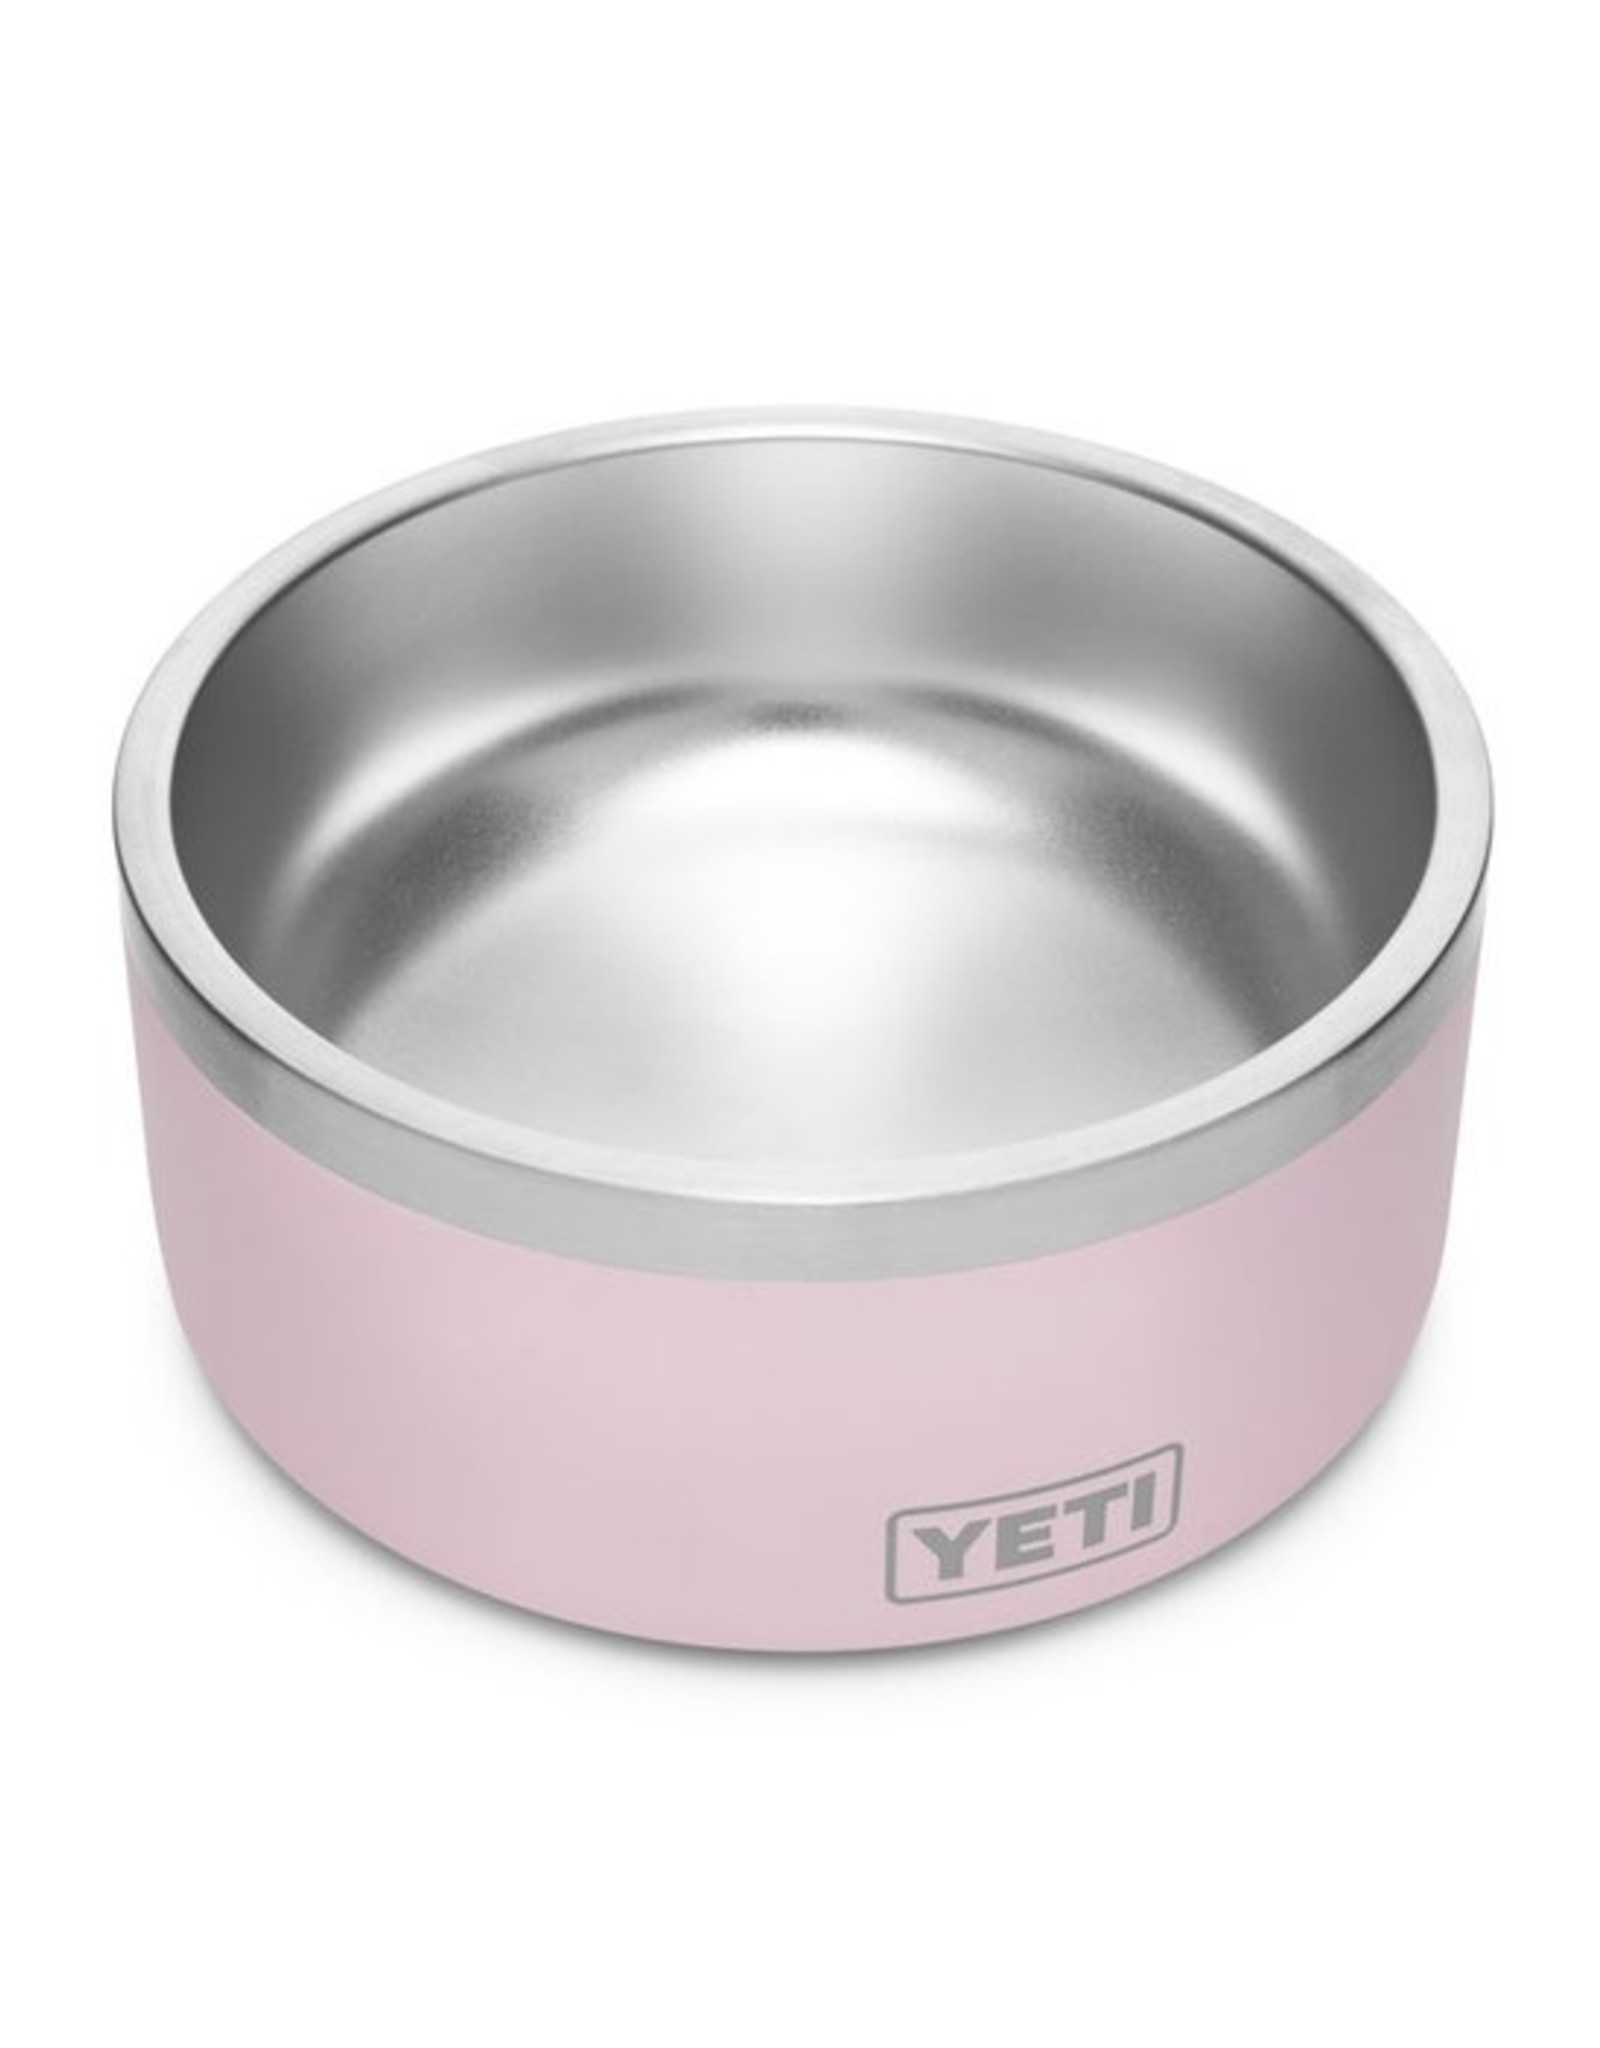 YETI Coolers Boomer 4 Dog Bowl - ICE PINK